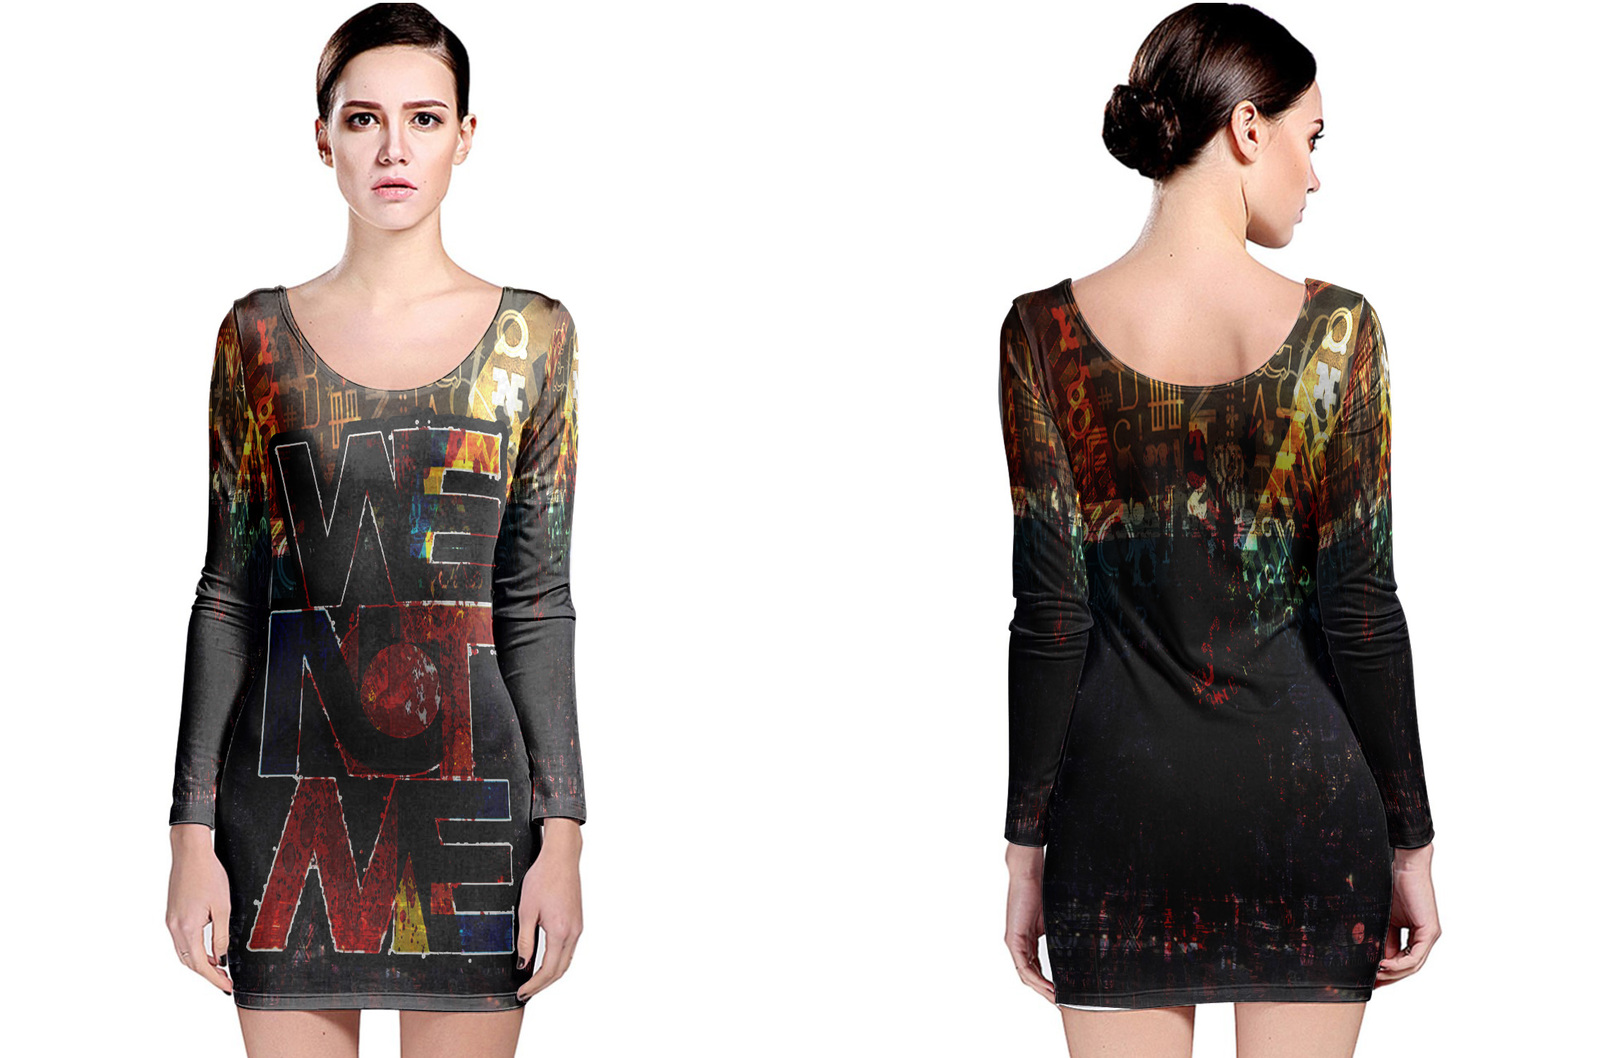 Primary image for Retro Collection #5 Women's Long Sleeve Bodycon Dress